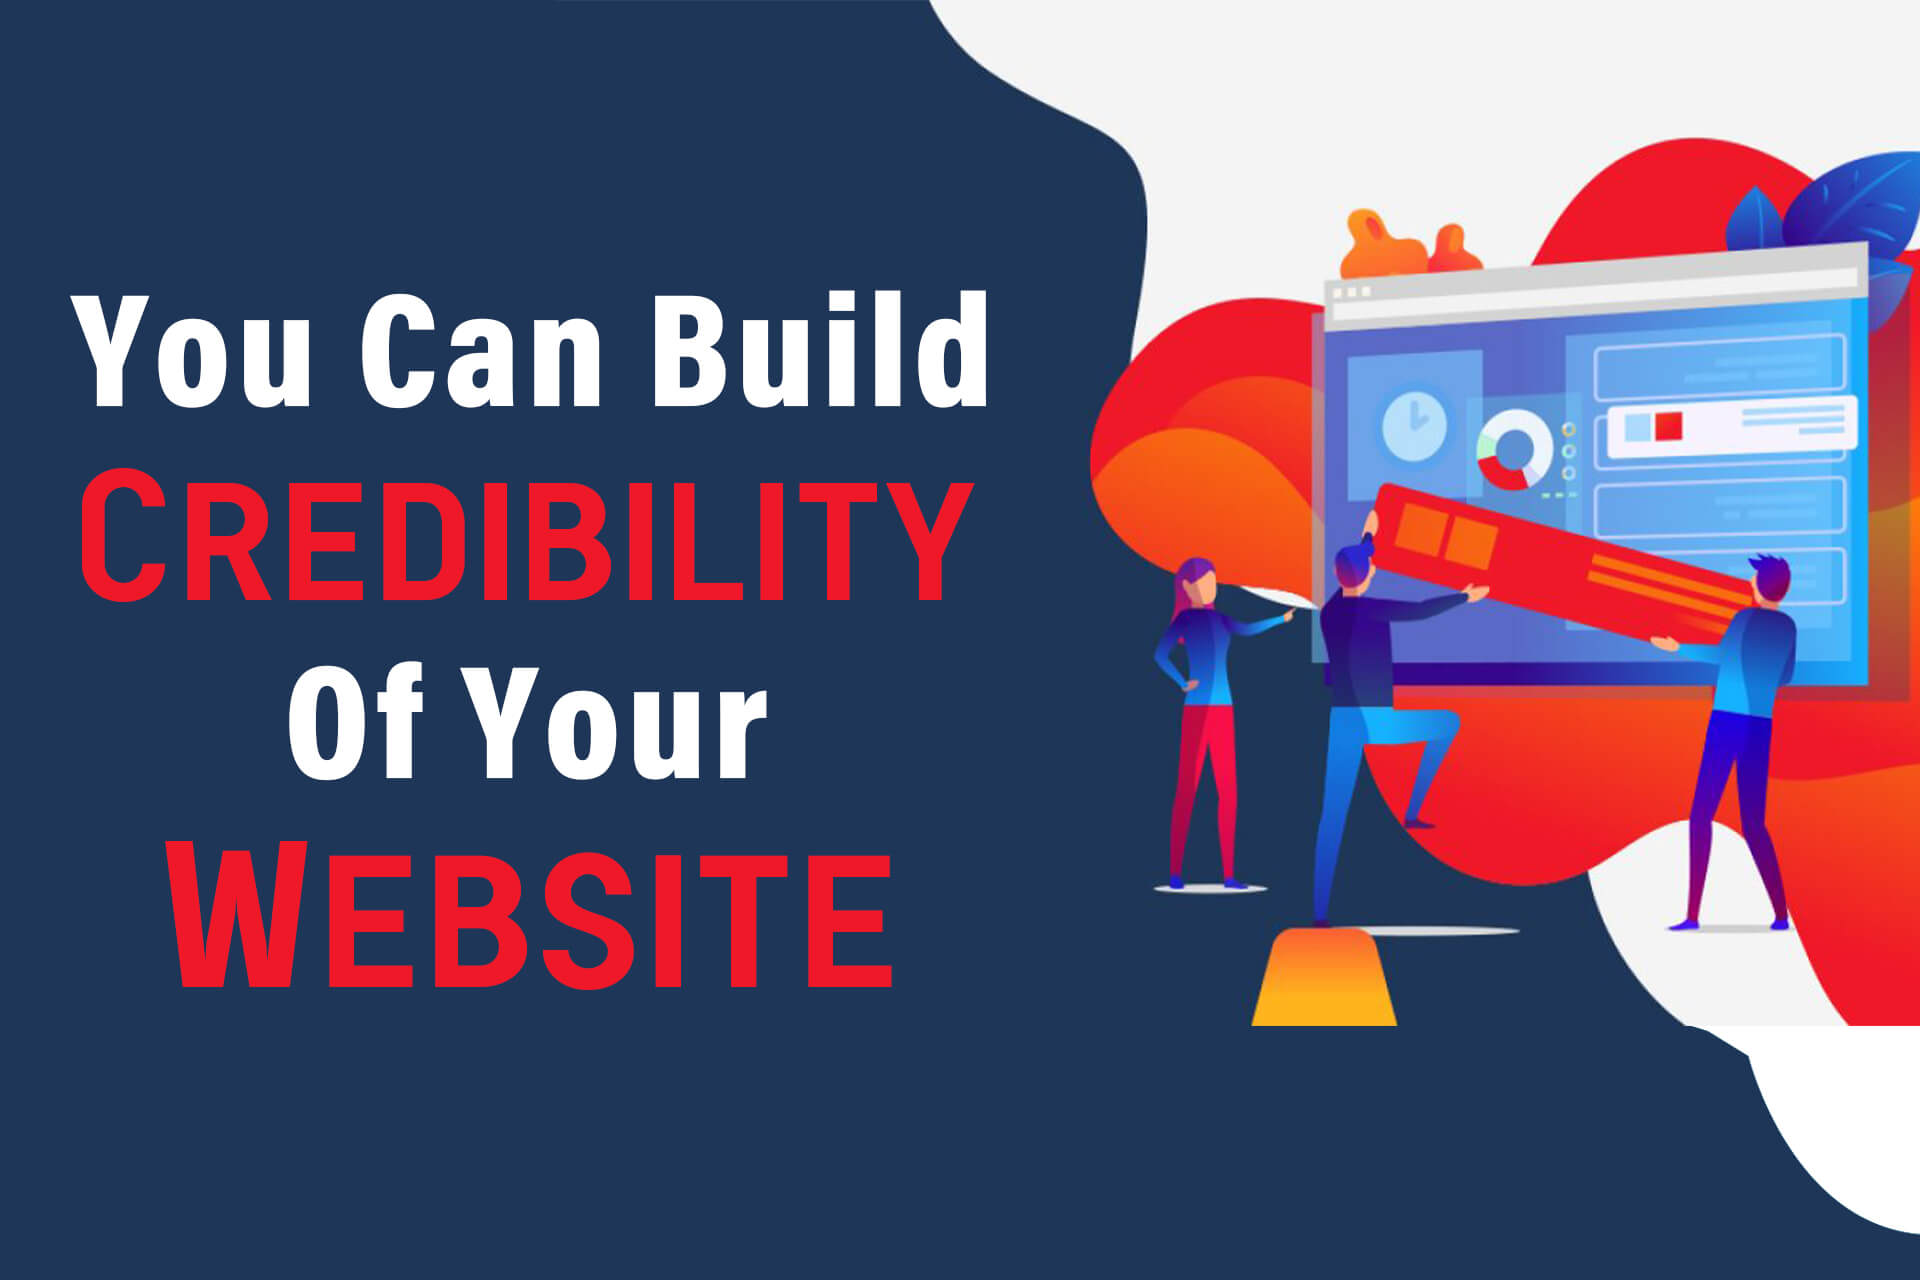 You Can Build Credibility Of Your Website